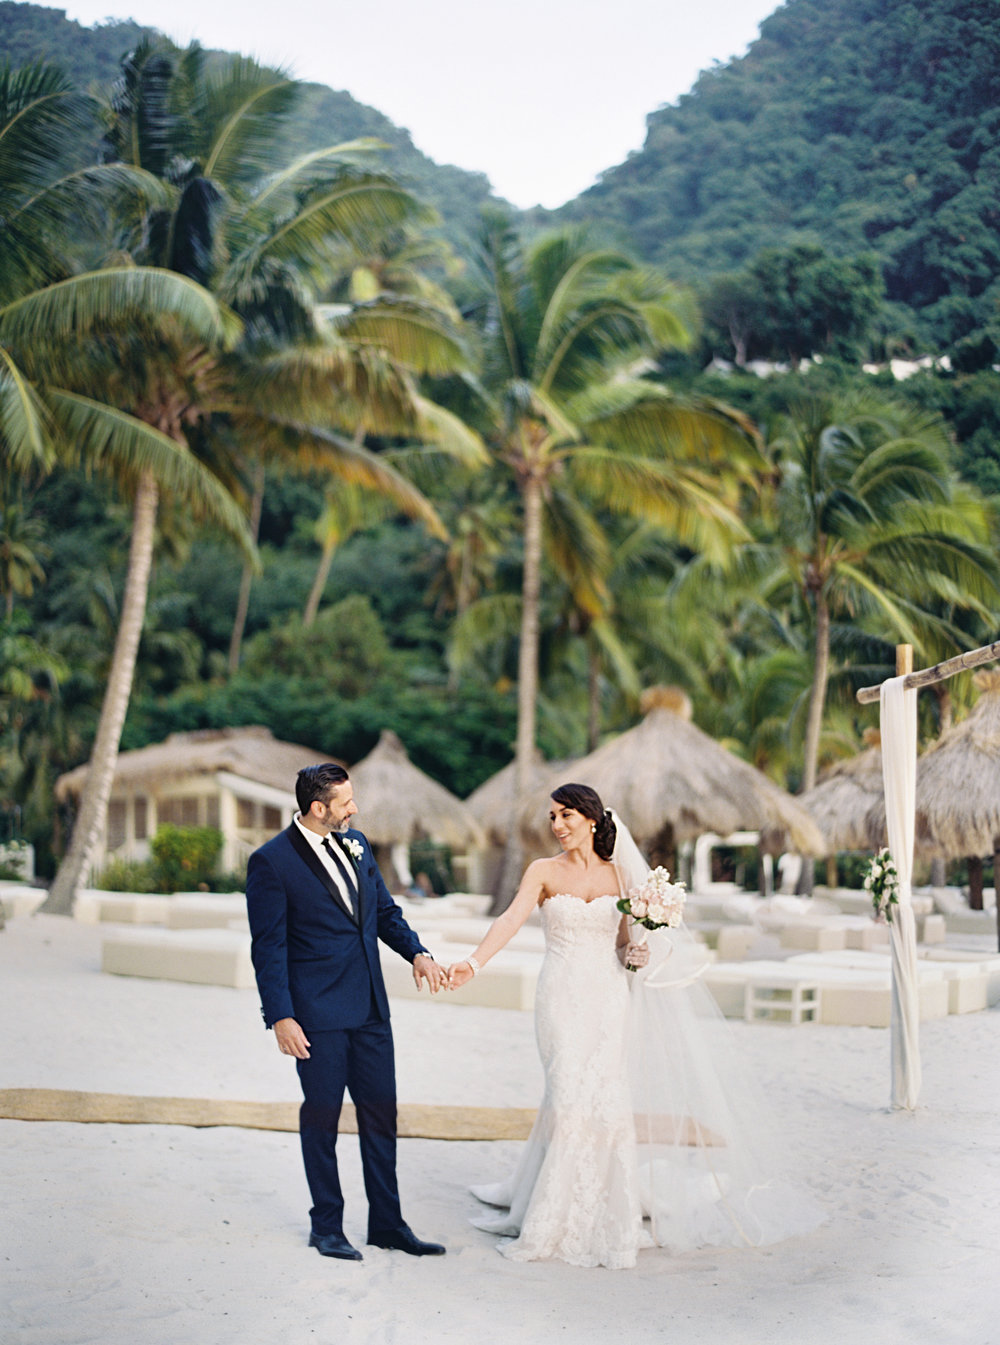 100Delmary's & Daniel : ELOPEMENT : ST. LUCIA : CARIBBEAN : PHOTO & VIDEO : DESTINATION : OUTLIVE CREATIVE : 2016 .jpg